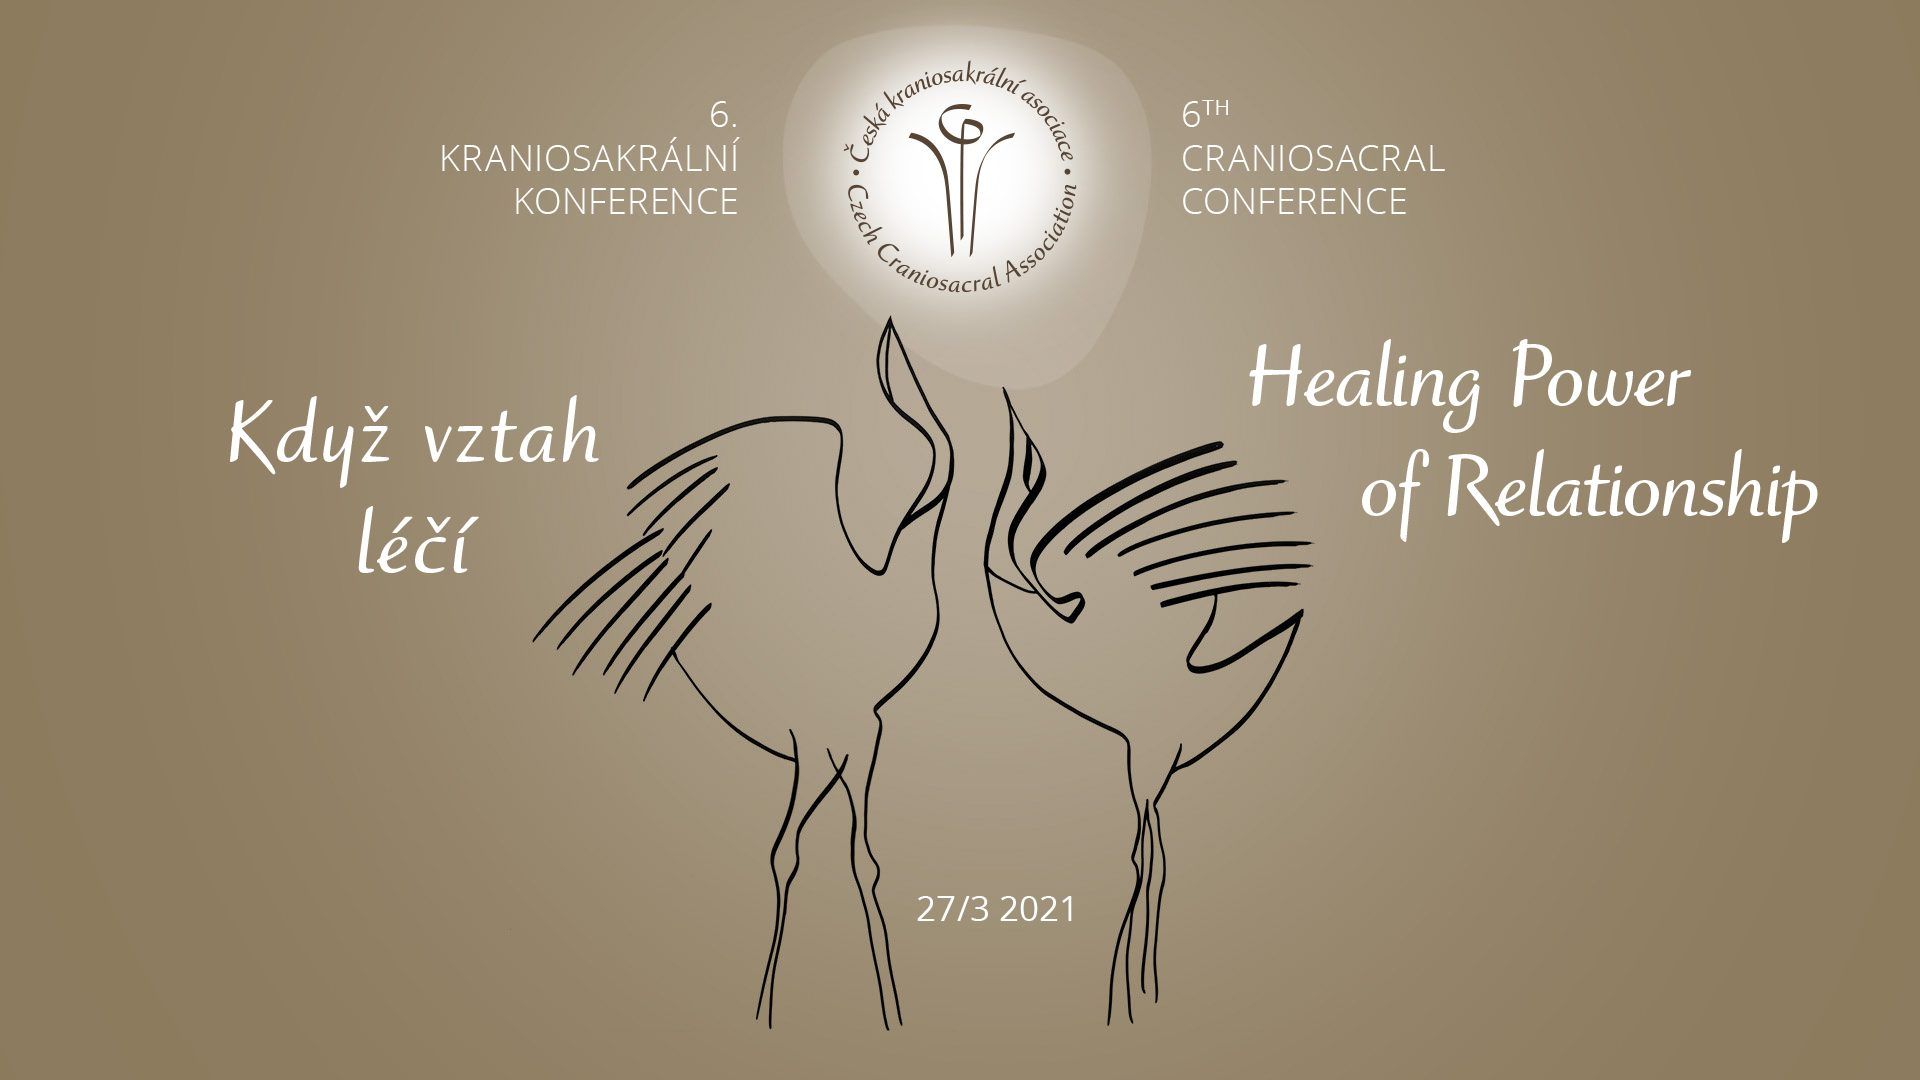 6th Craniosacral conference - The Healing Power of Relationship